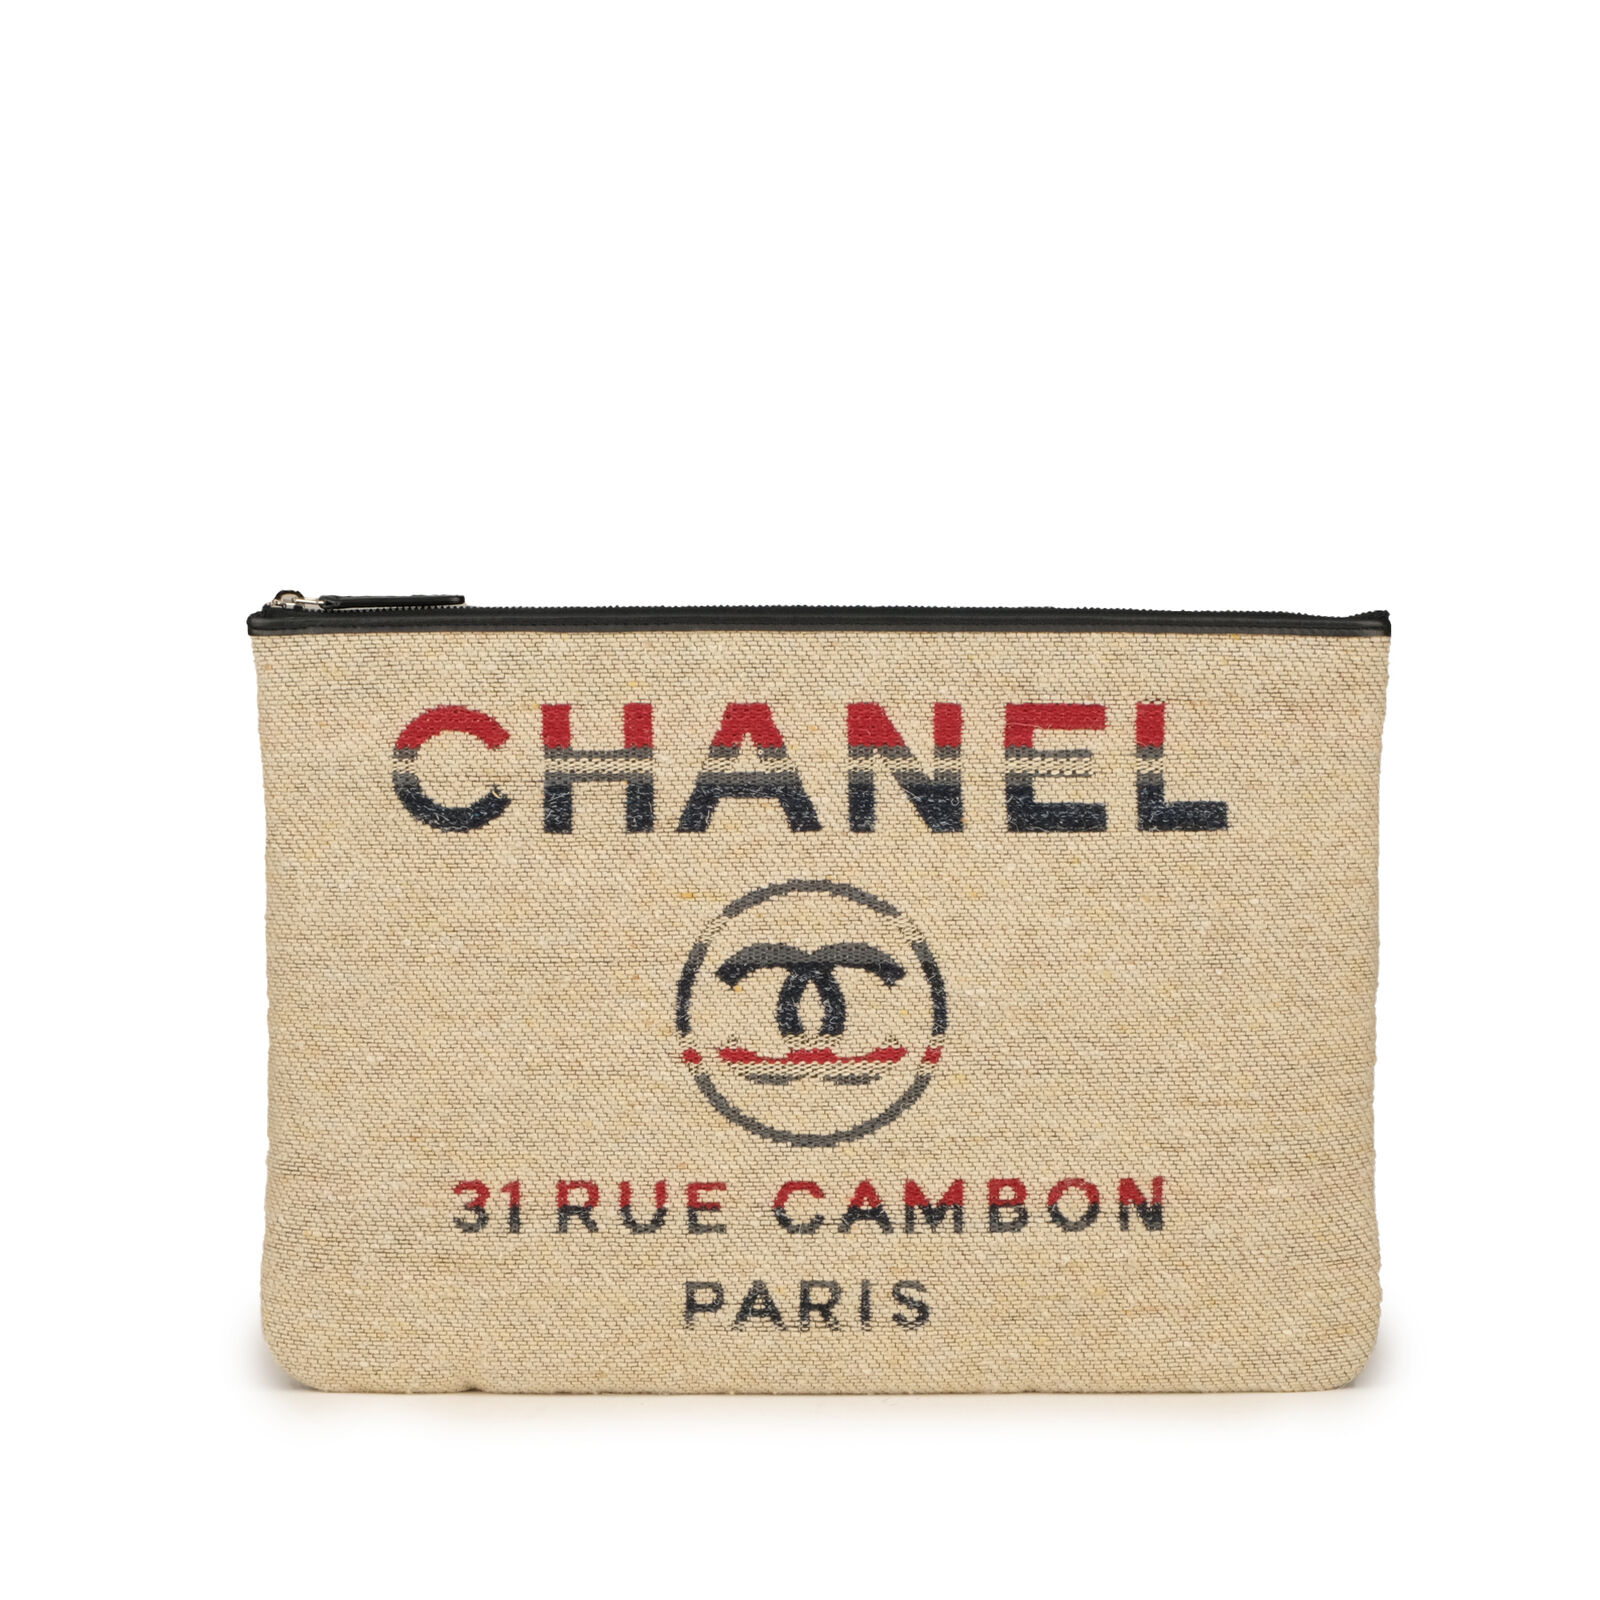 New 2019 Chanel Deauville Stripe Canvas Tweed Large O Case Pouch Clutch Bag